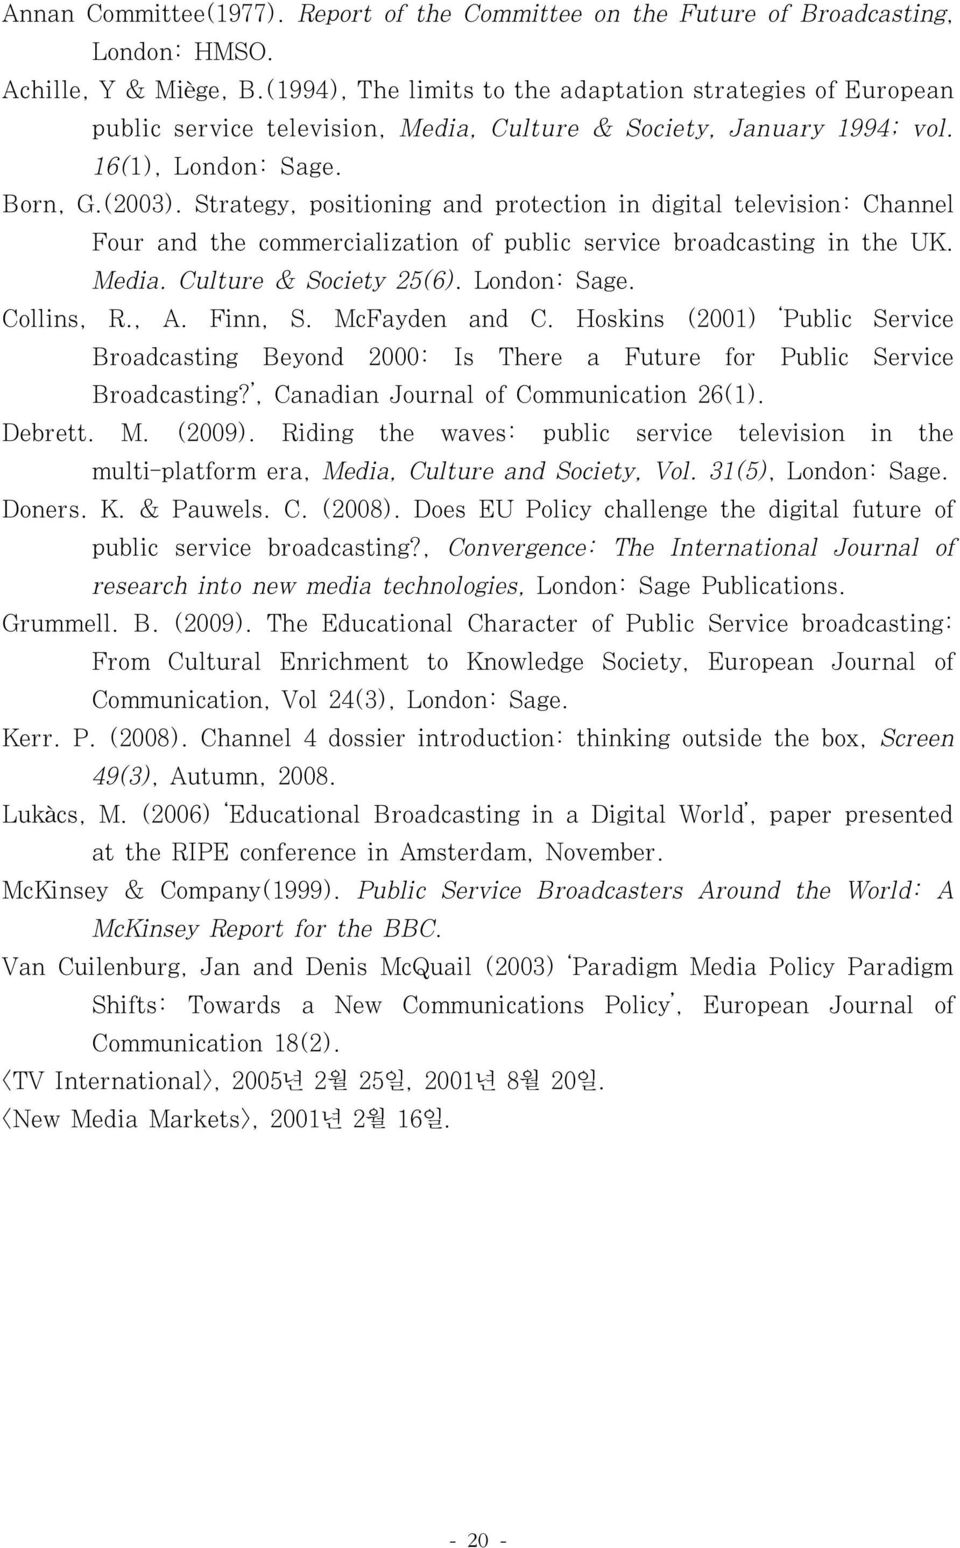 Strategy, positioning and protection in digital television: Channel Four and the commercialization of public service broadcasting in the UK. Media. Culture & Society 25(6). London: Sage. Collins, R.